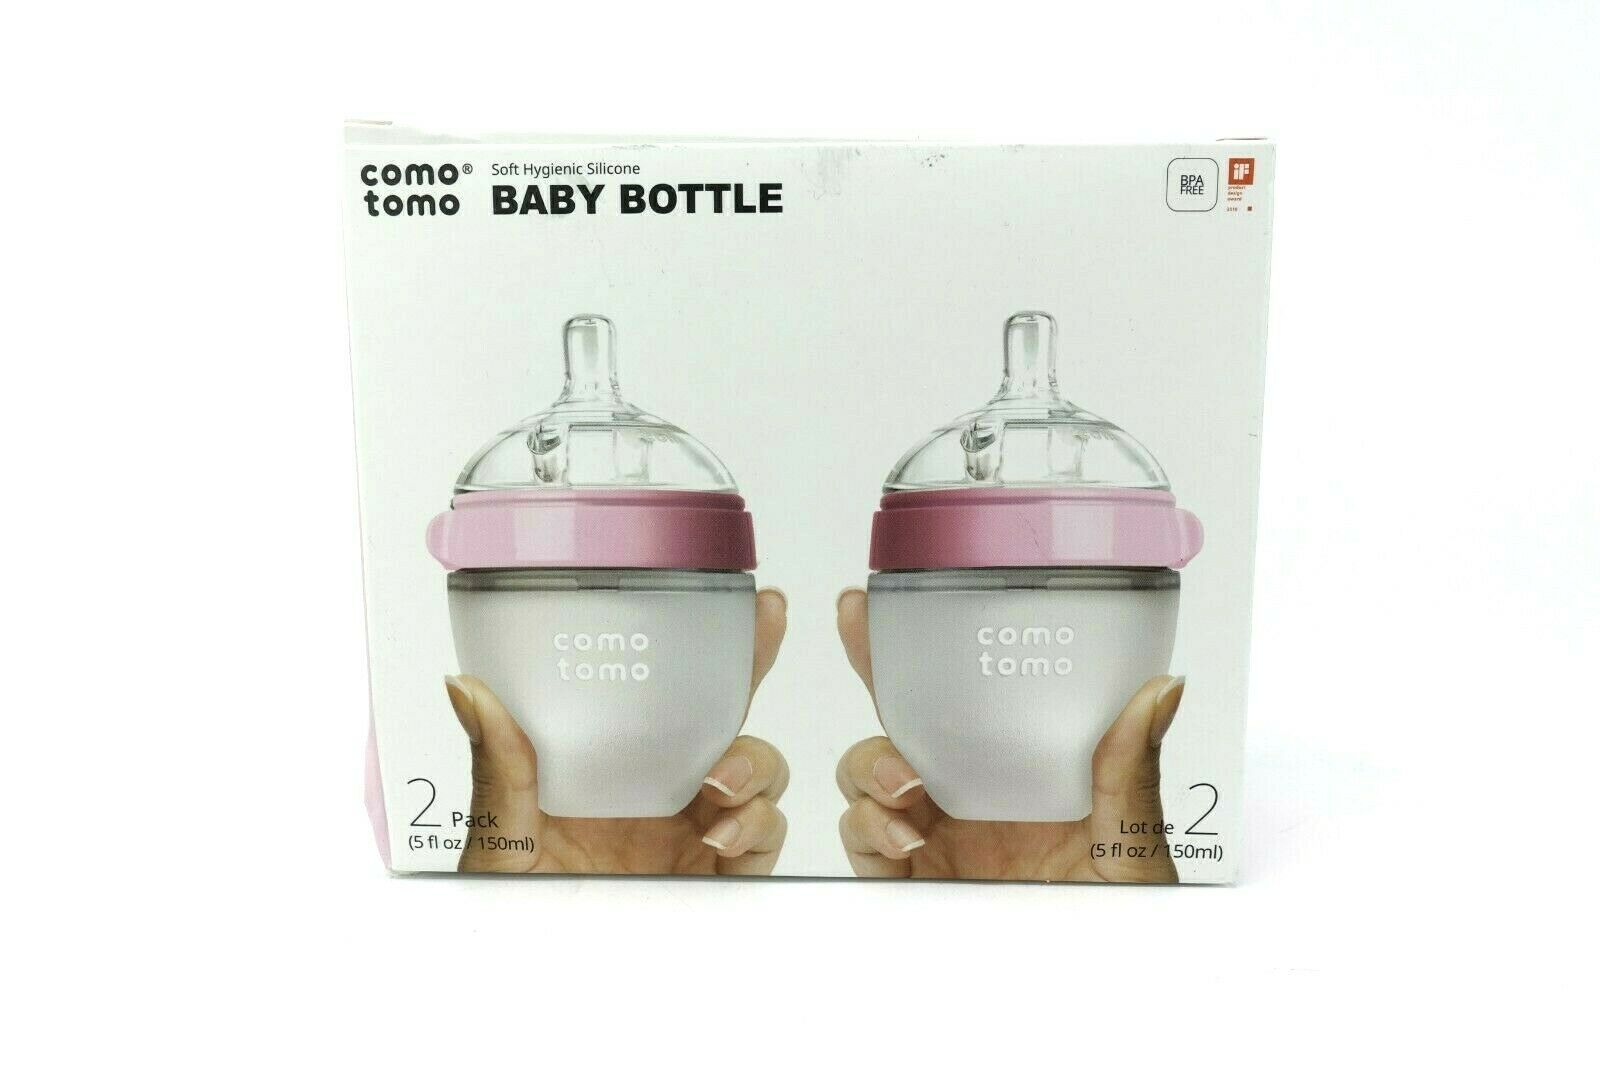 Comotomo Natural Feel Baby Bottle, Double Pack Pink, 150ml